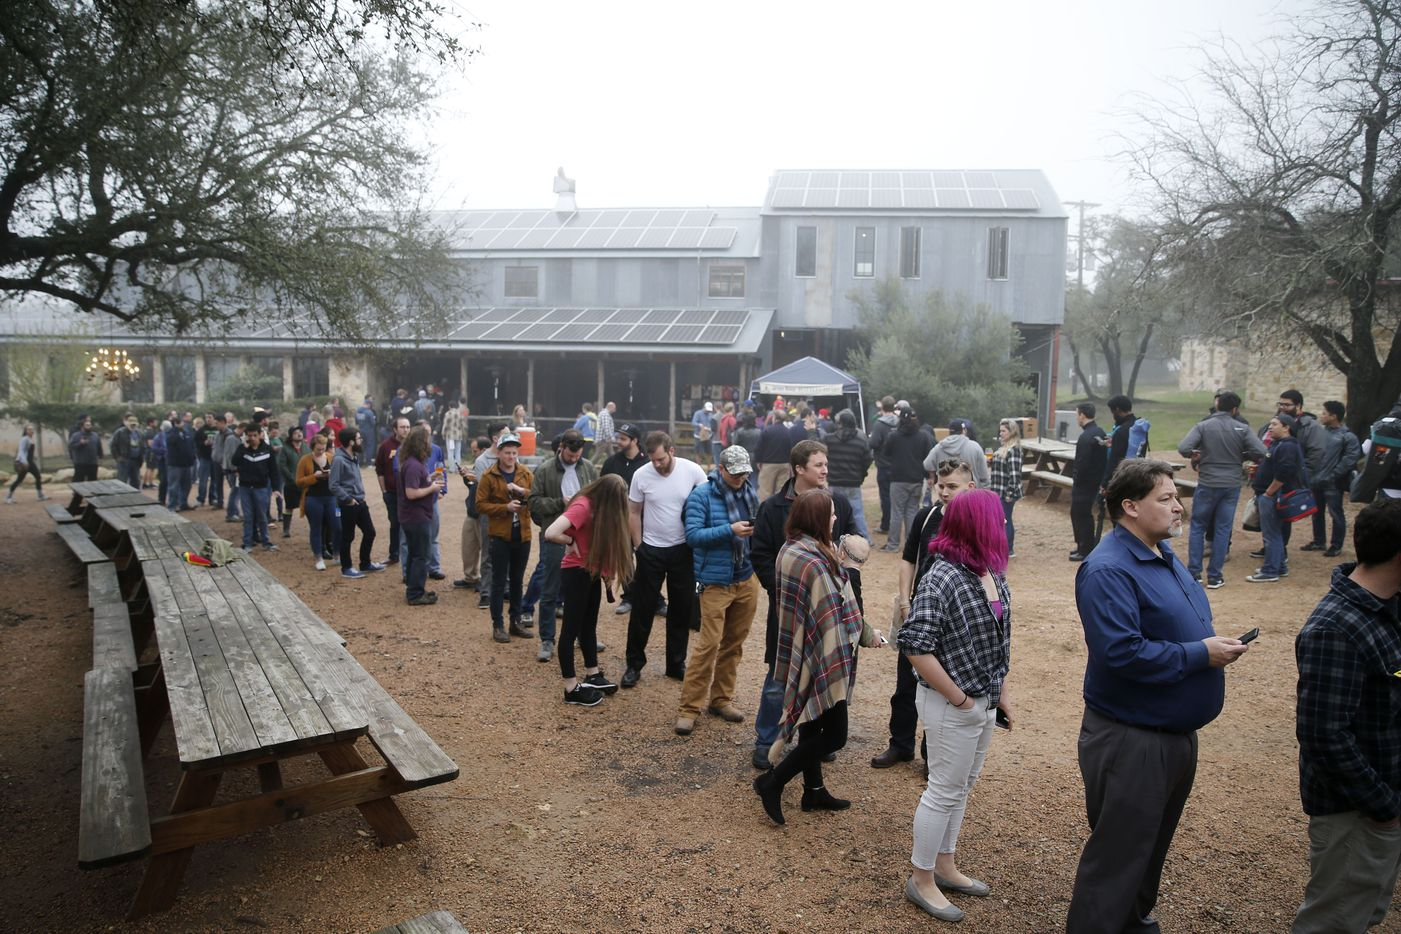 People wait in line to purchase a bottle of Elements of Composition blend 1!, a collaboration with De Garde Brewing and Sante Adairius Rustic Ales at Jester King Brewery in Austin, Texas on Friday, February 23, 2018.